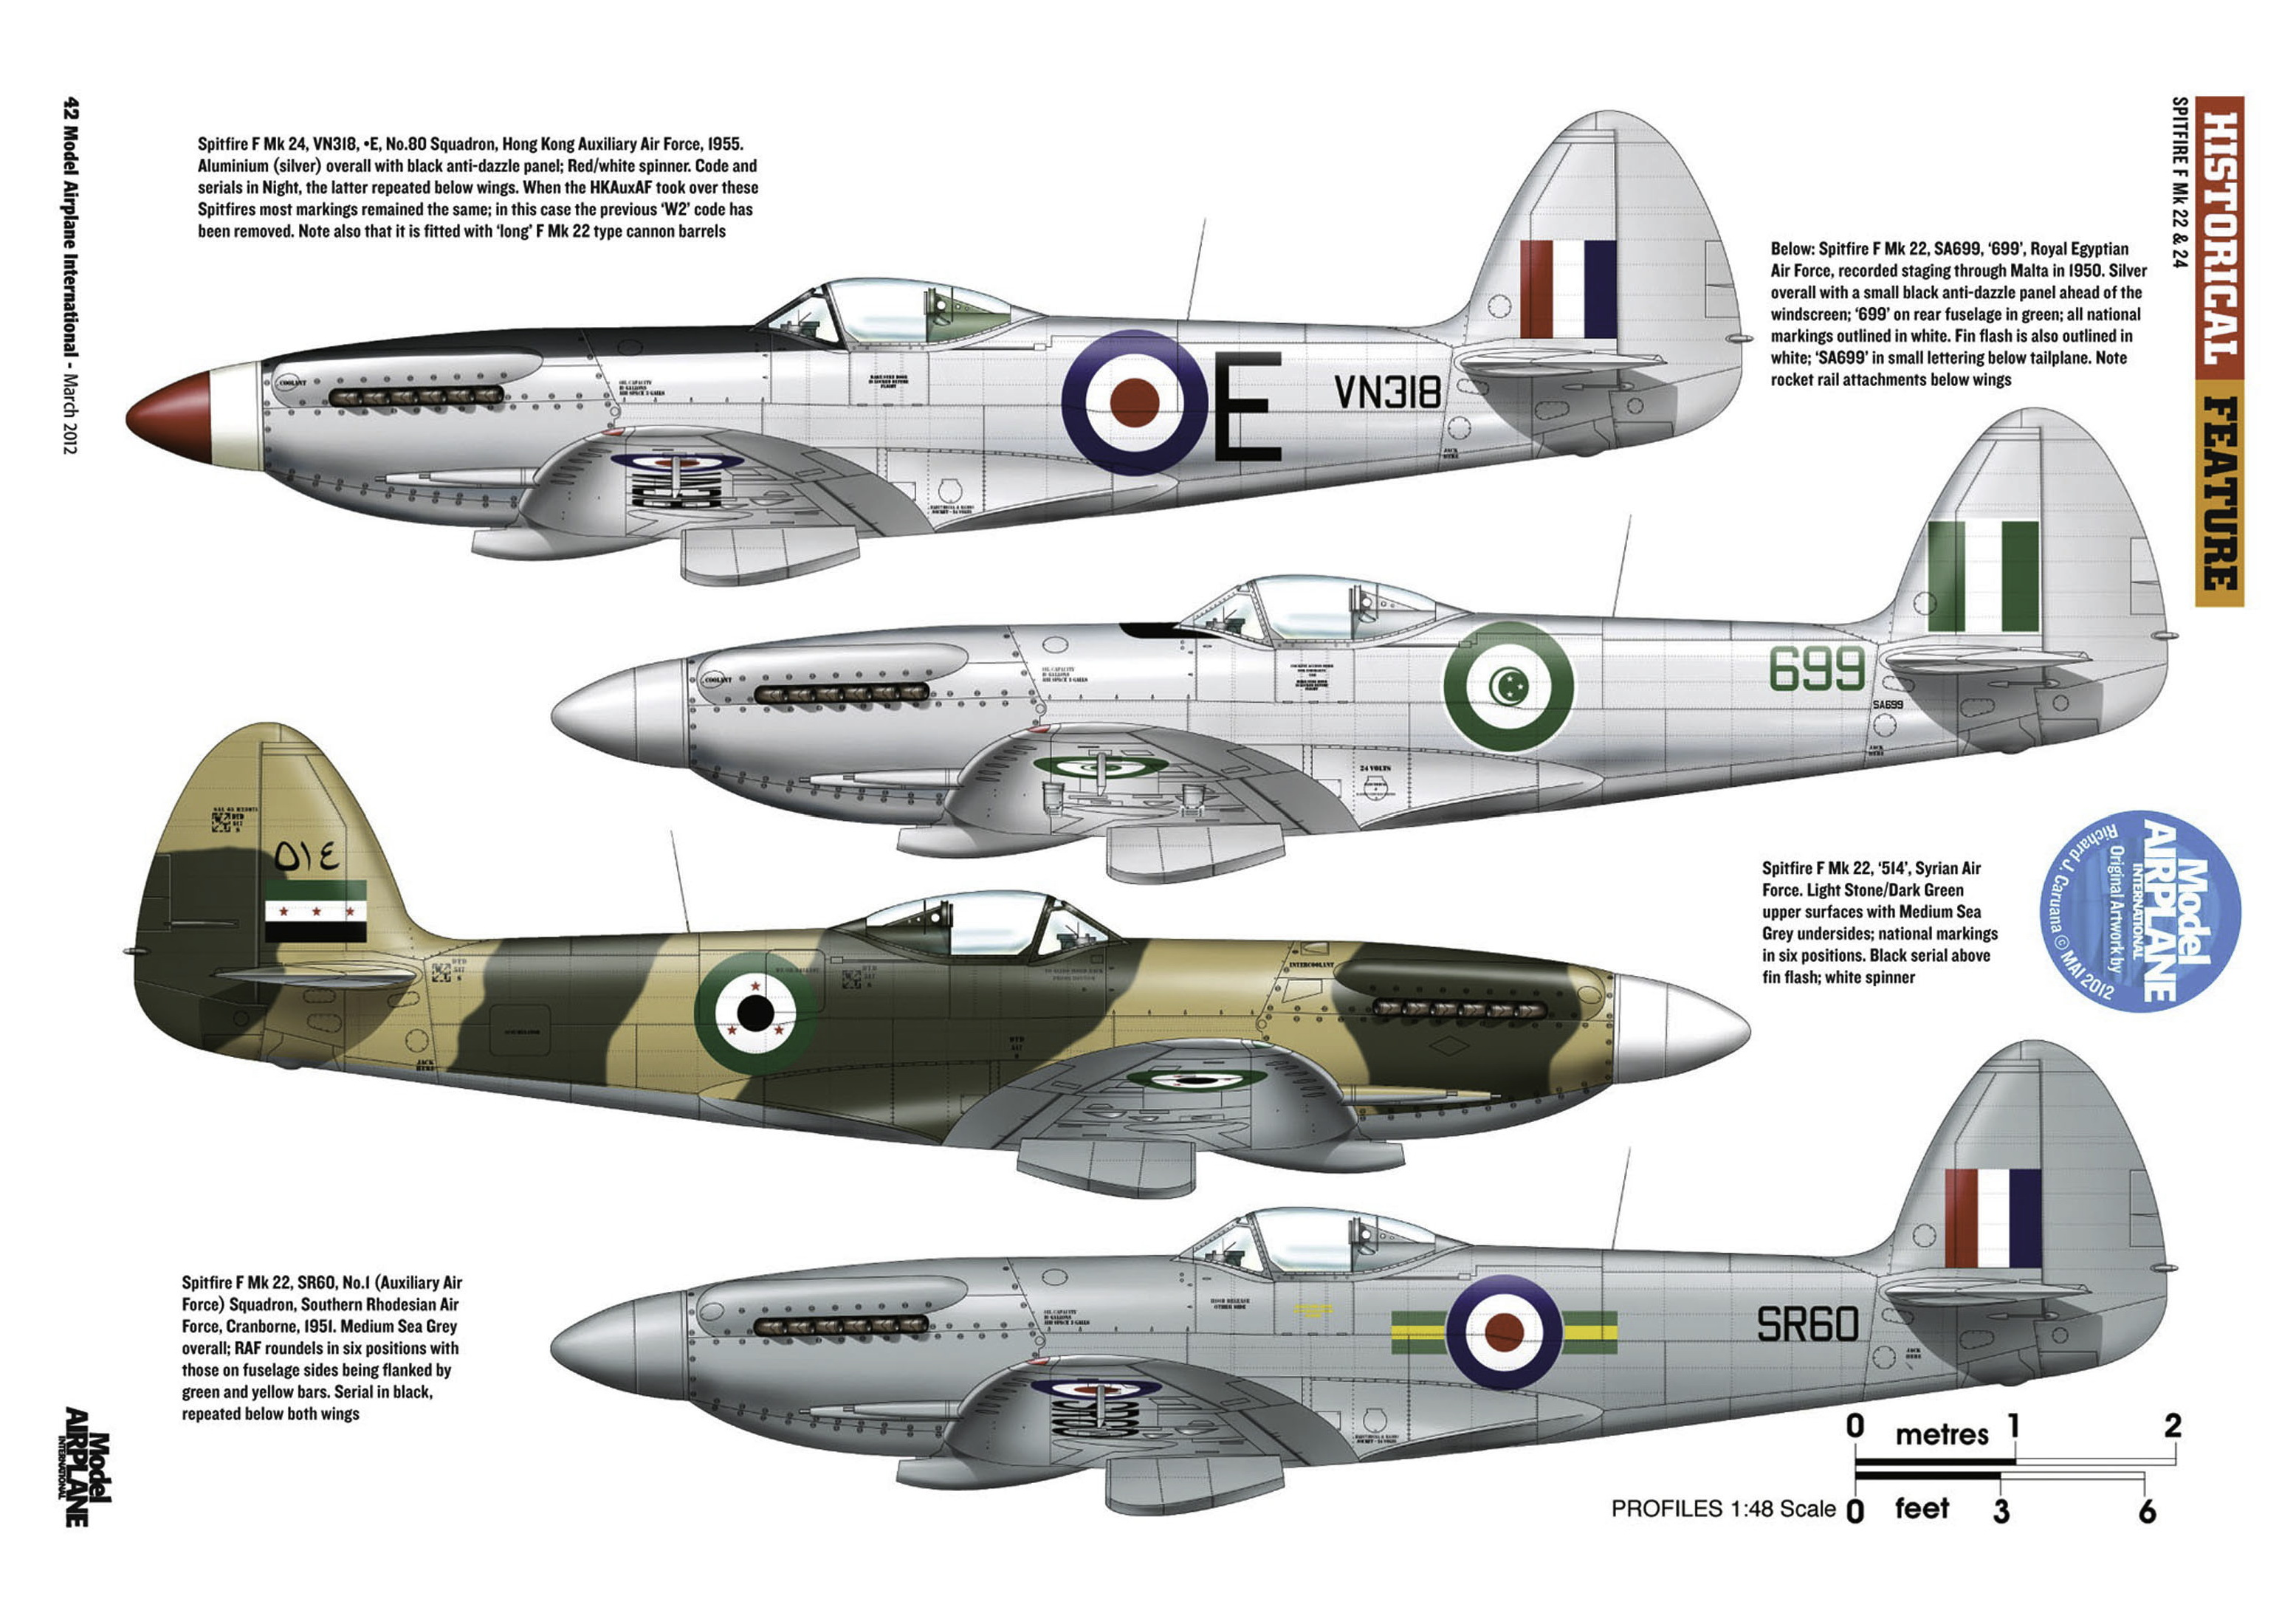 Supermarine Spitfire profiles by Model Airplane Int 080 2012 03 Page 42